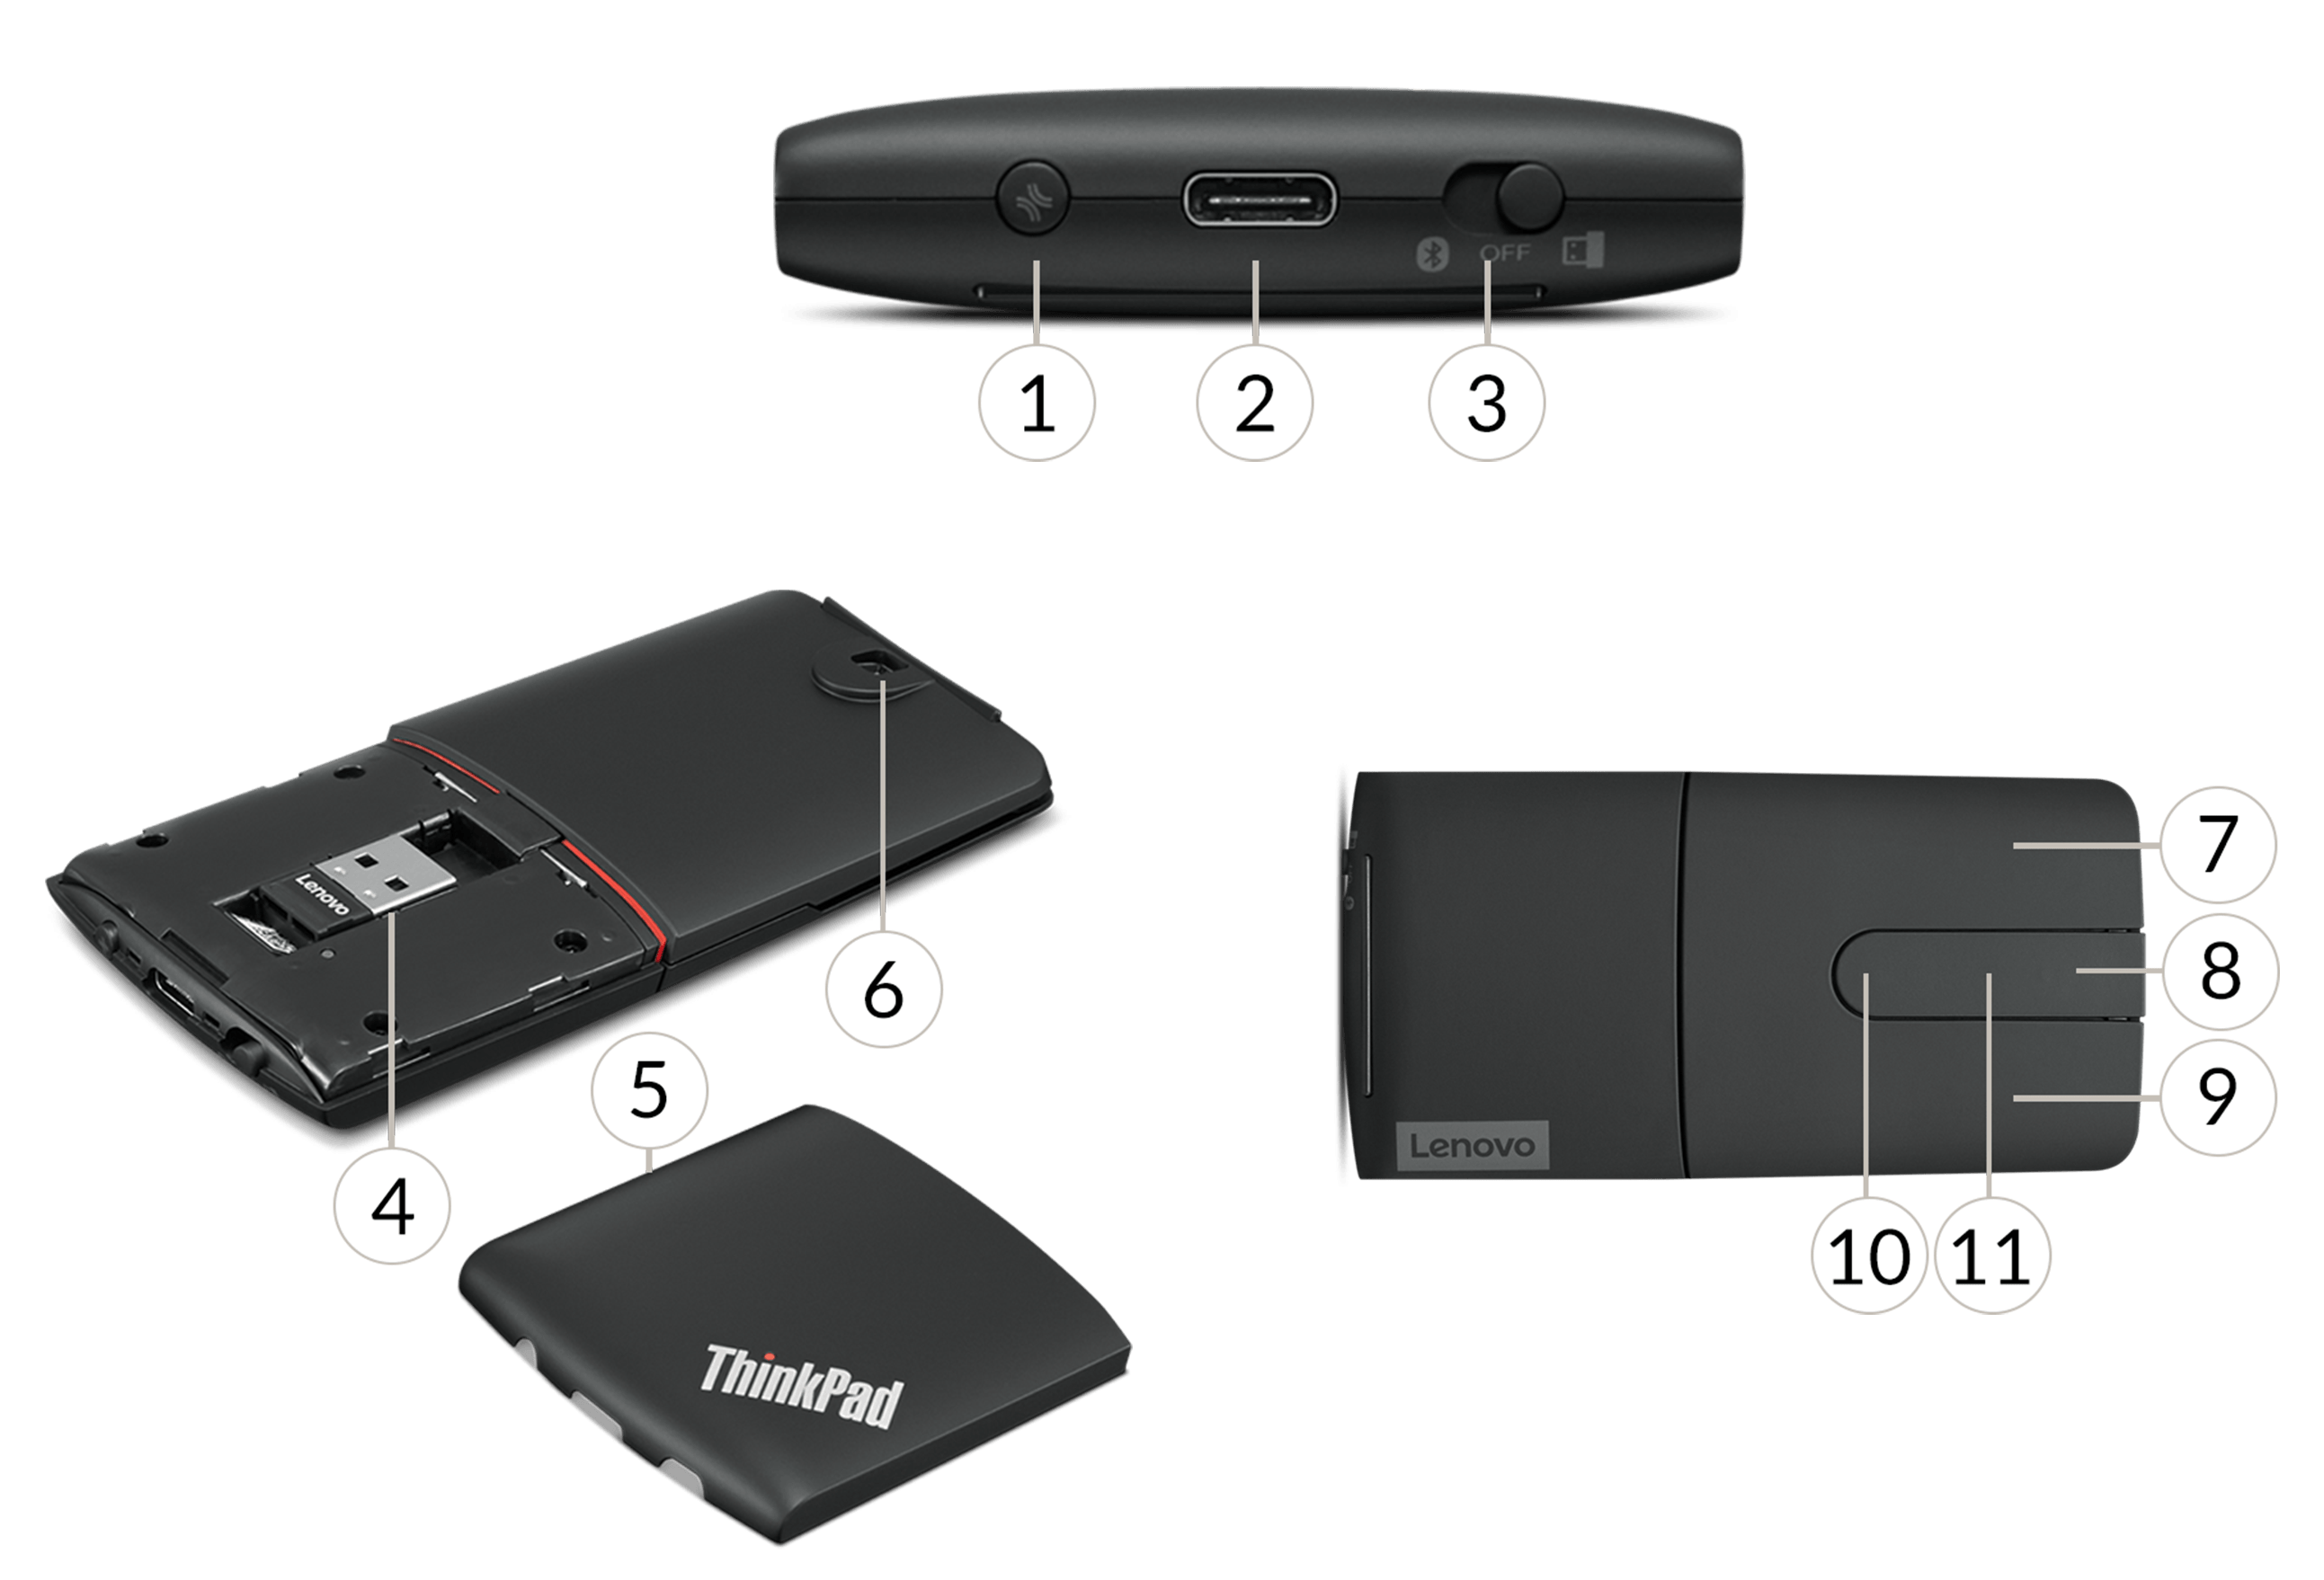 ThinkPad X1 Mouse features View